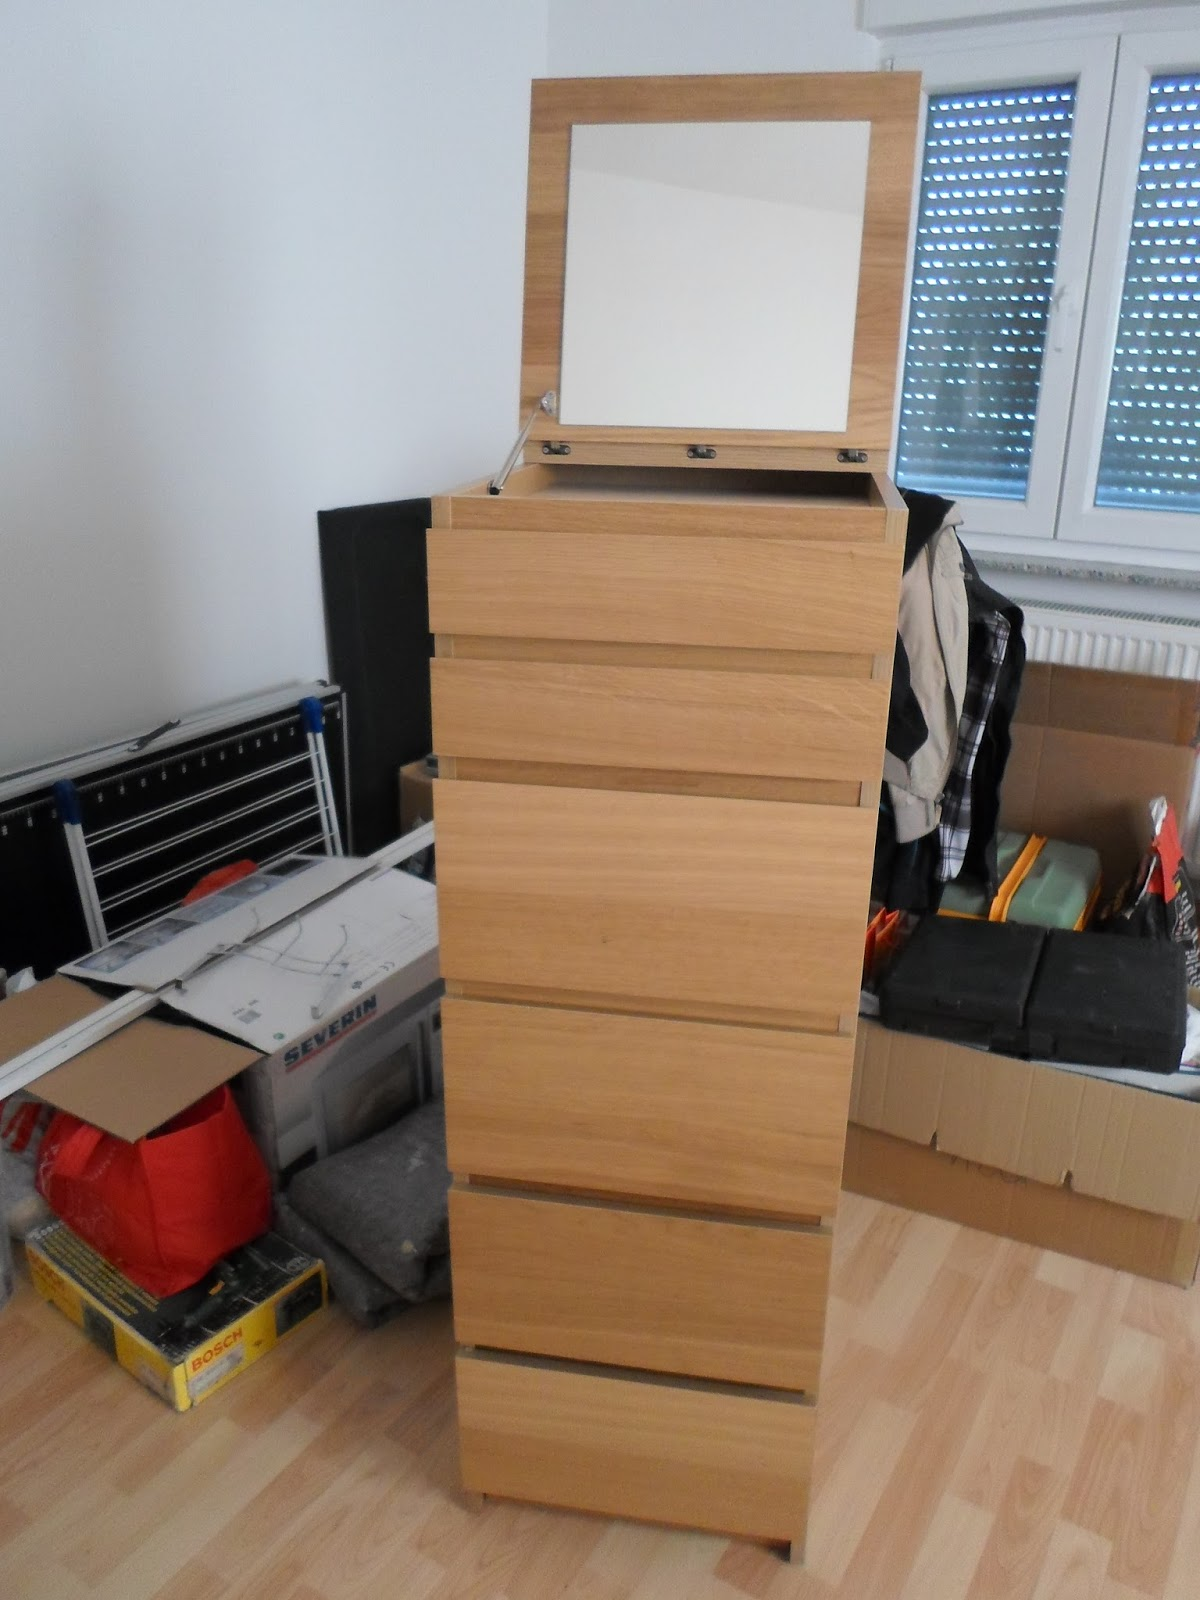 schonschick haul essence sephora und ikea. Black Bedroom Furniture Sets. Home Design Ideas